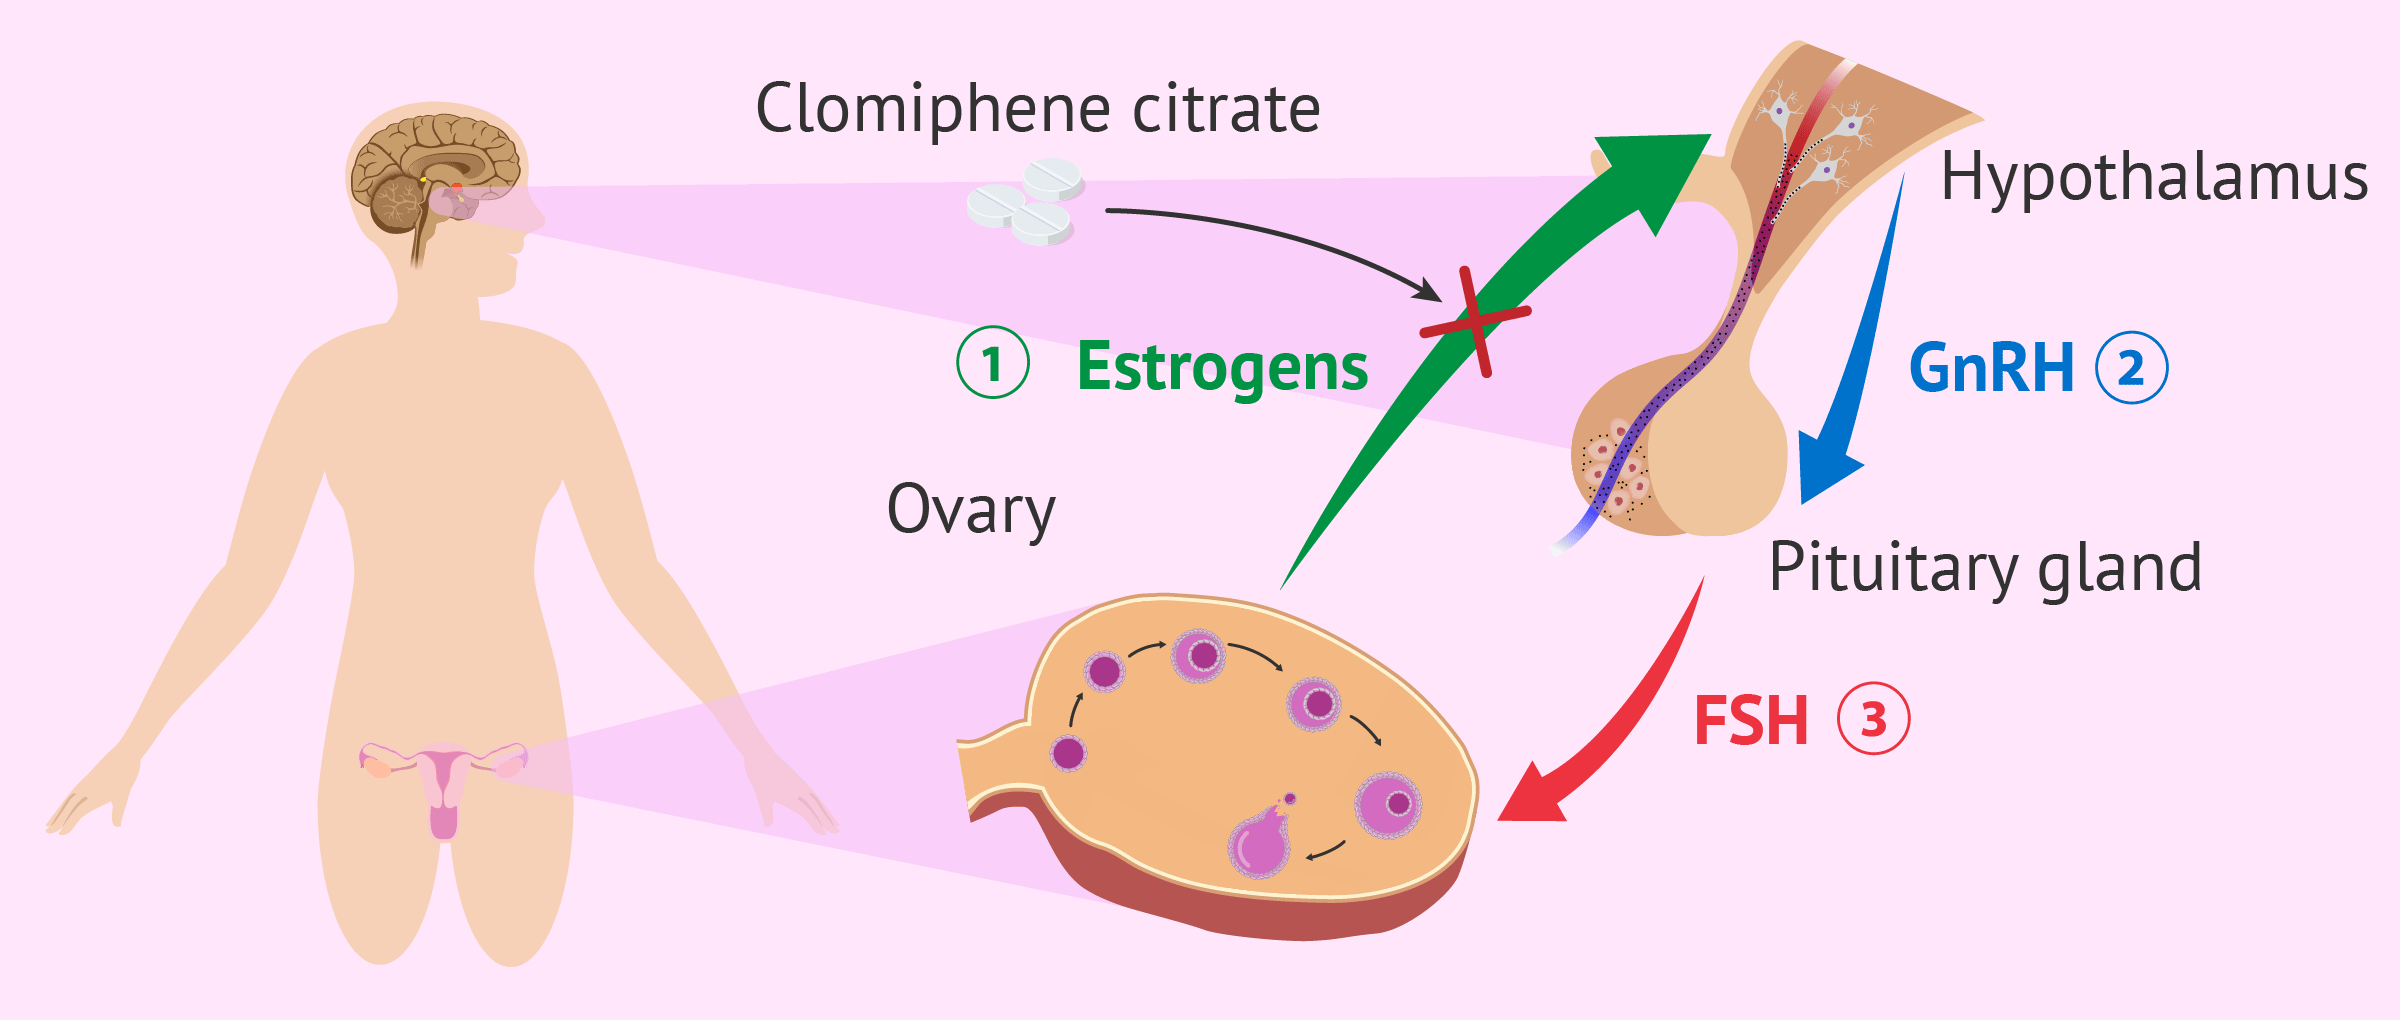 Clomiphene citrate to induce ovulation